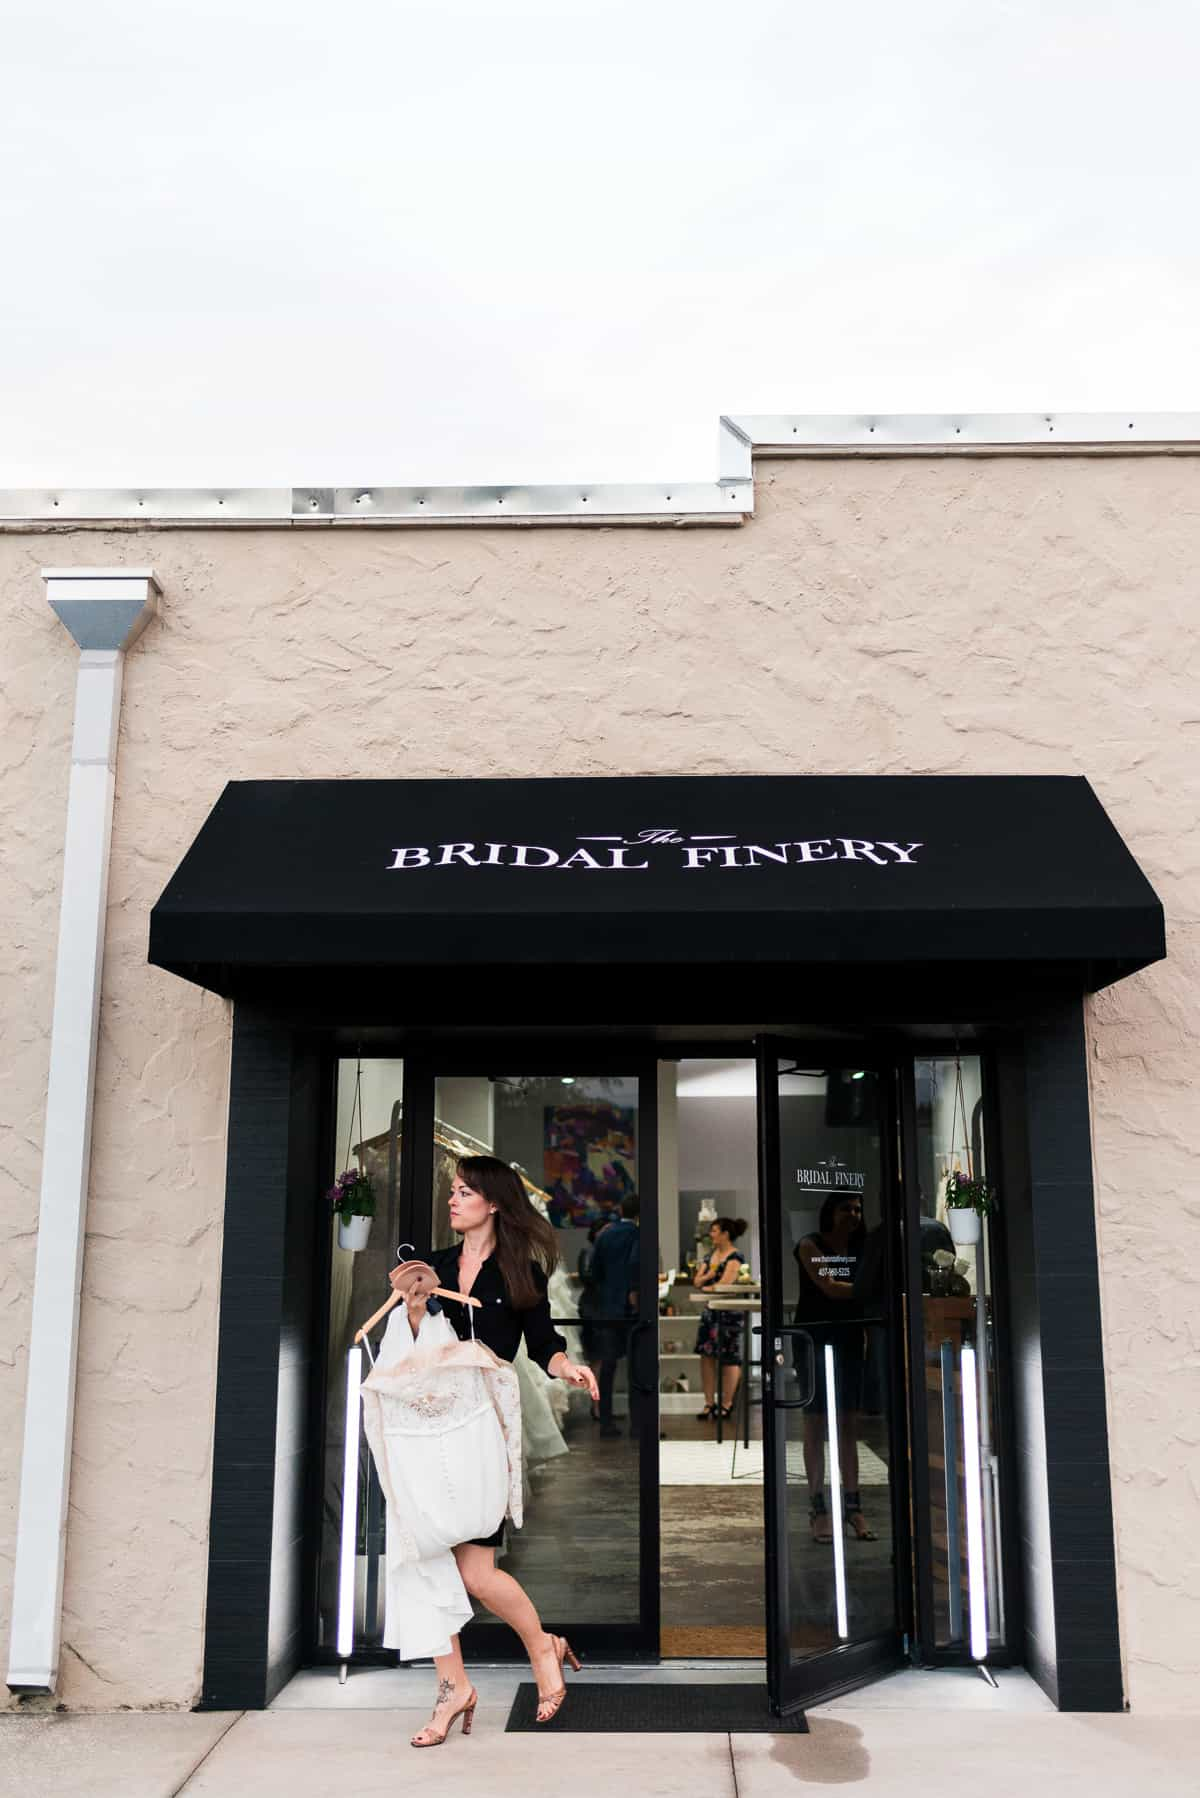 bride walking out of The Bridal Finery dress boutique with wedding gown in hand